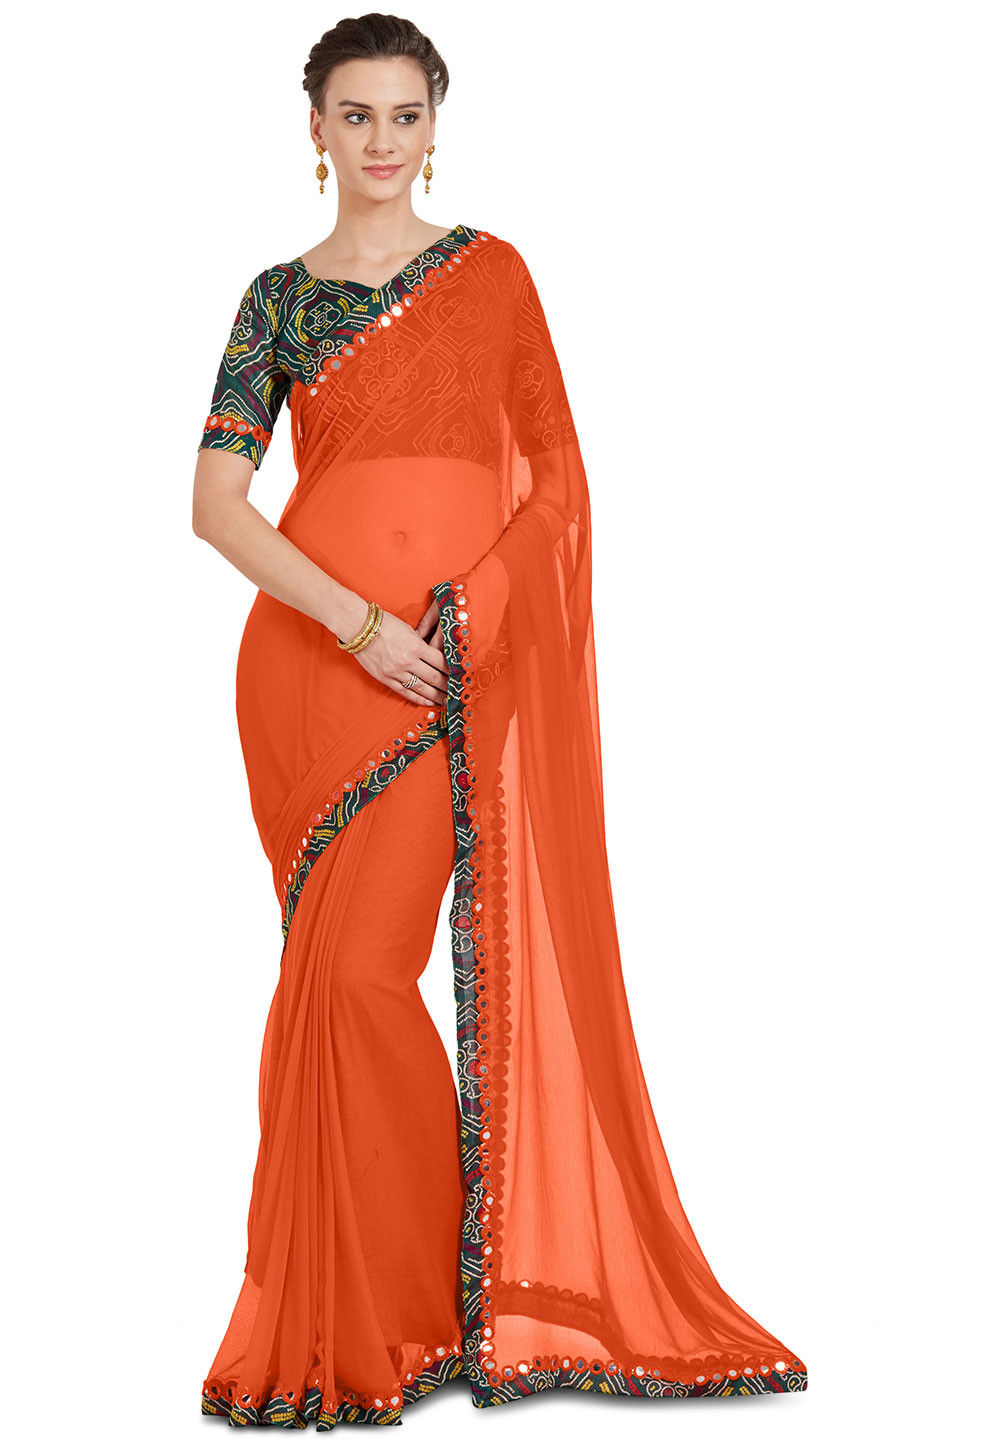 d2ece55496979d Utsav Fashion · Saree; Contrast Border Chiffon Saree in Orange. Zoom